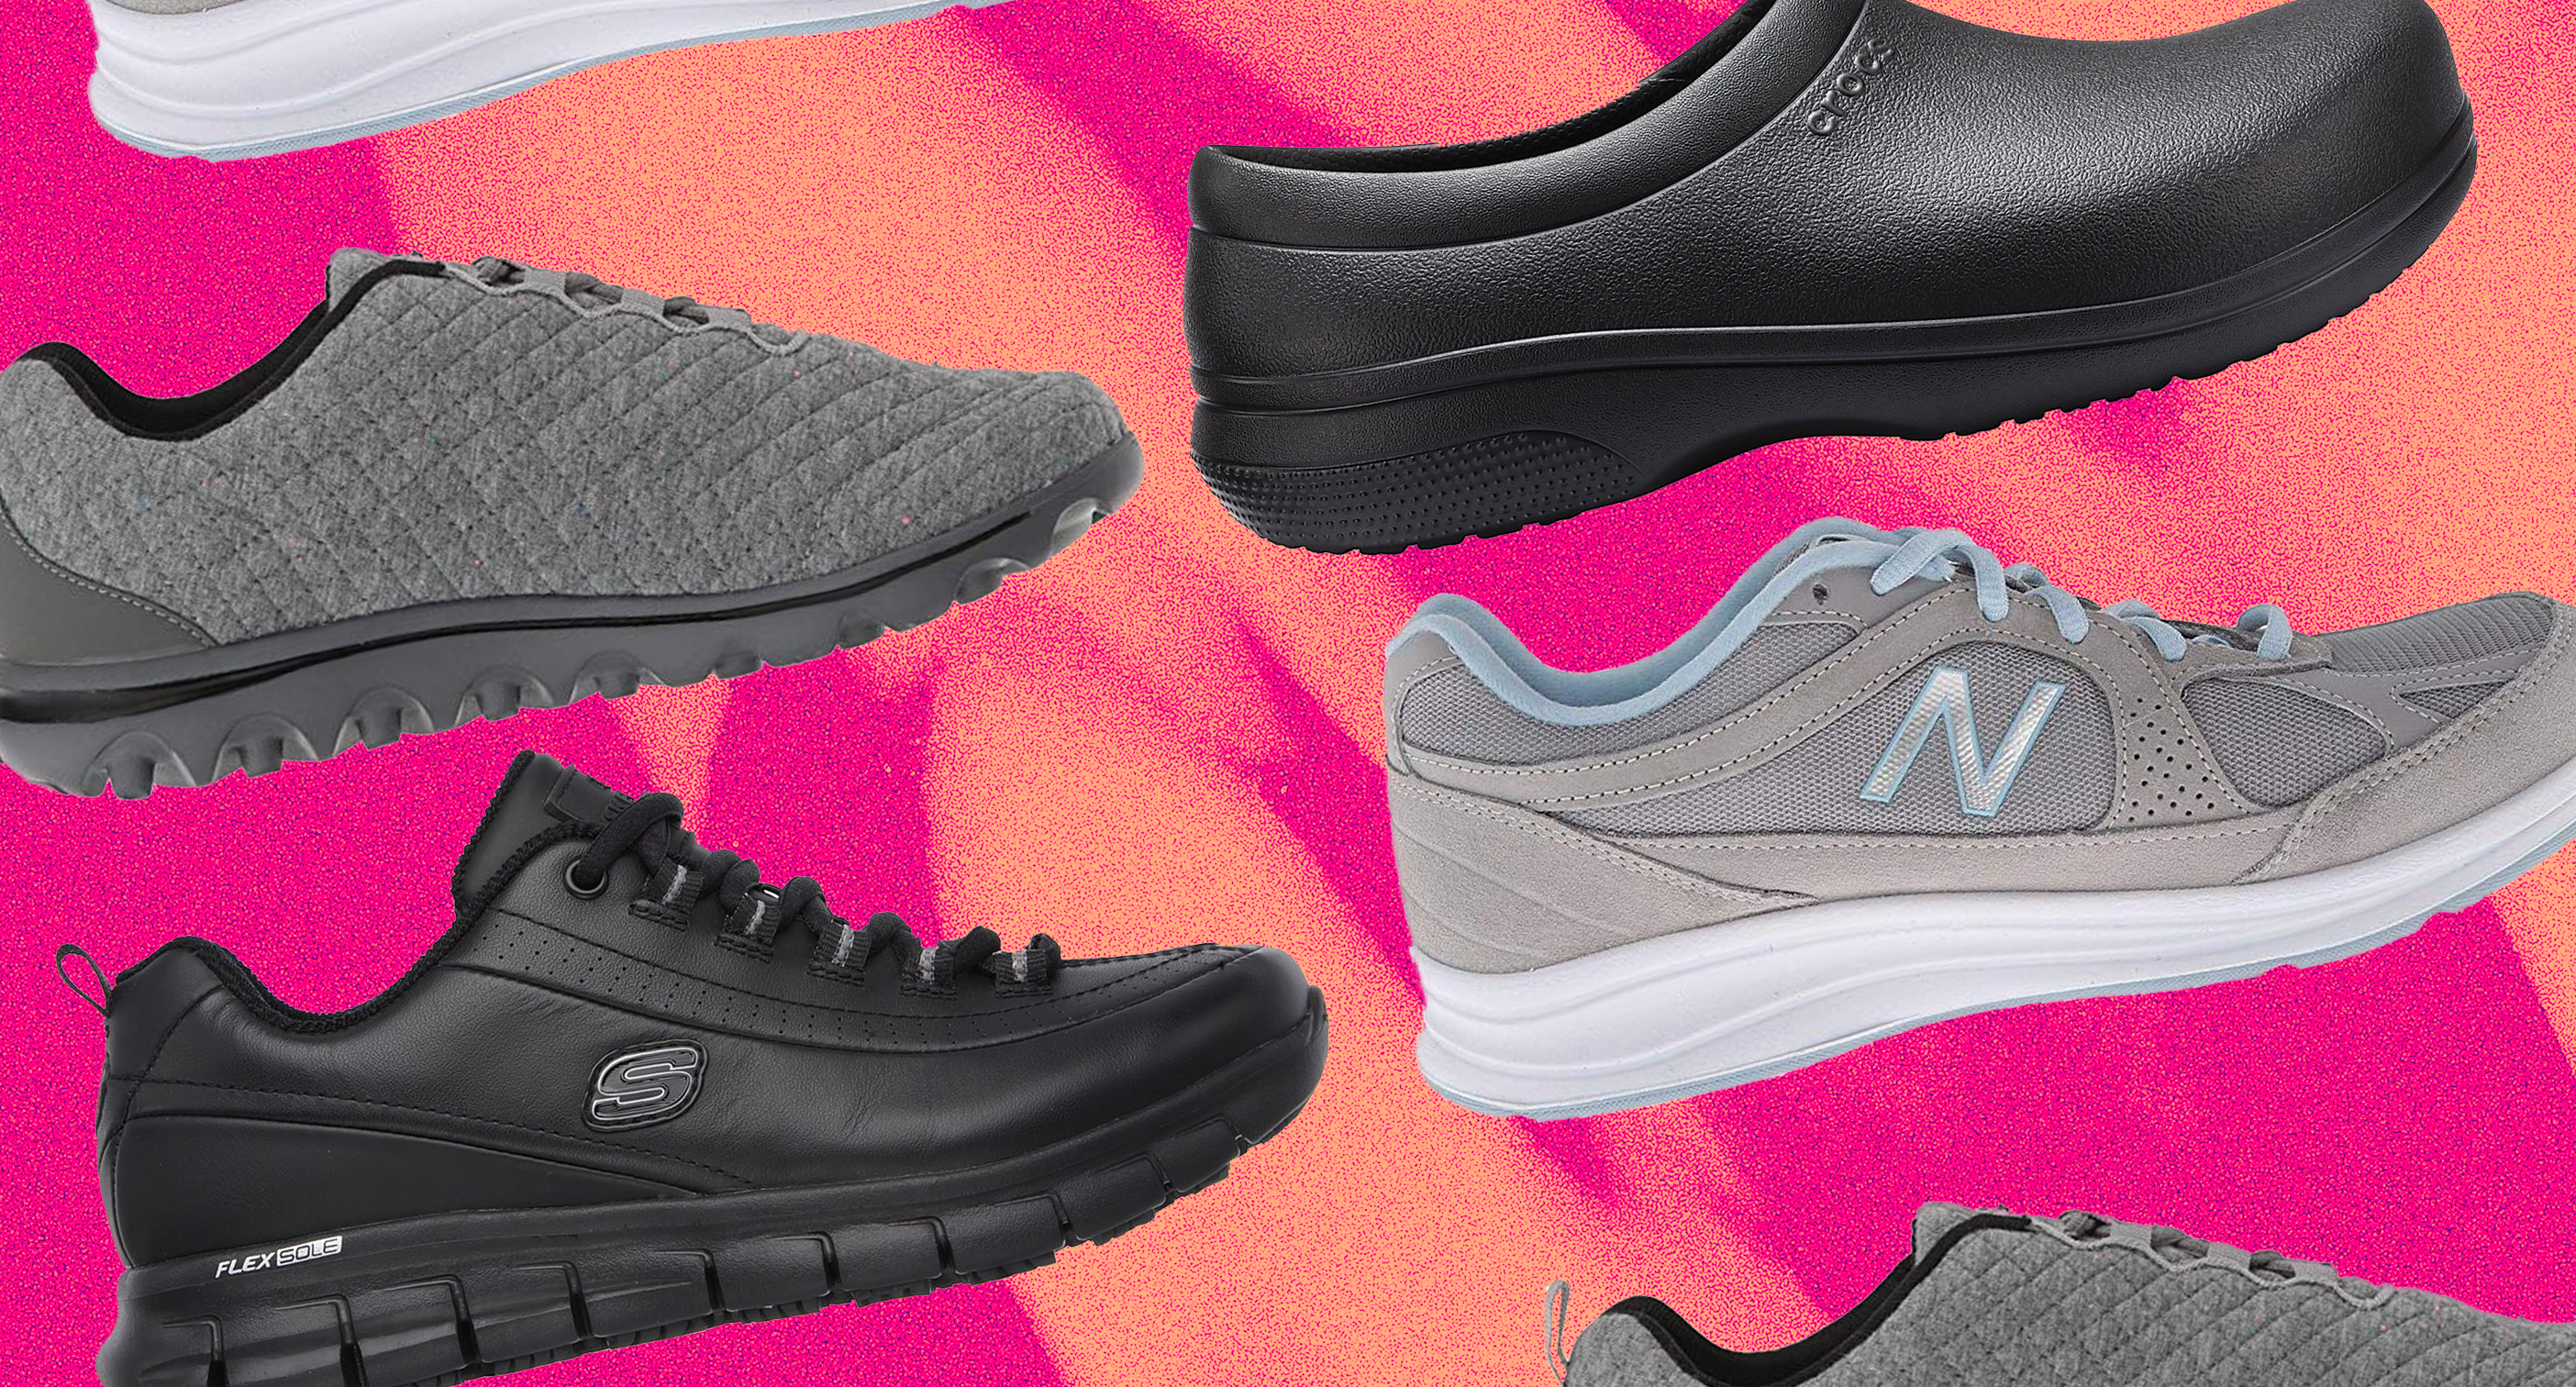 b4c8397113f The 8 best work shoes for people with active jobs